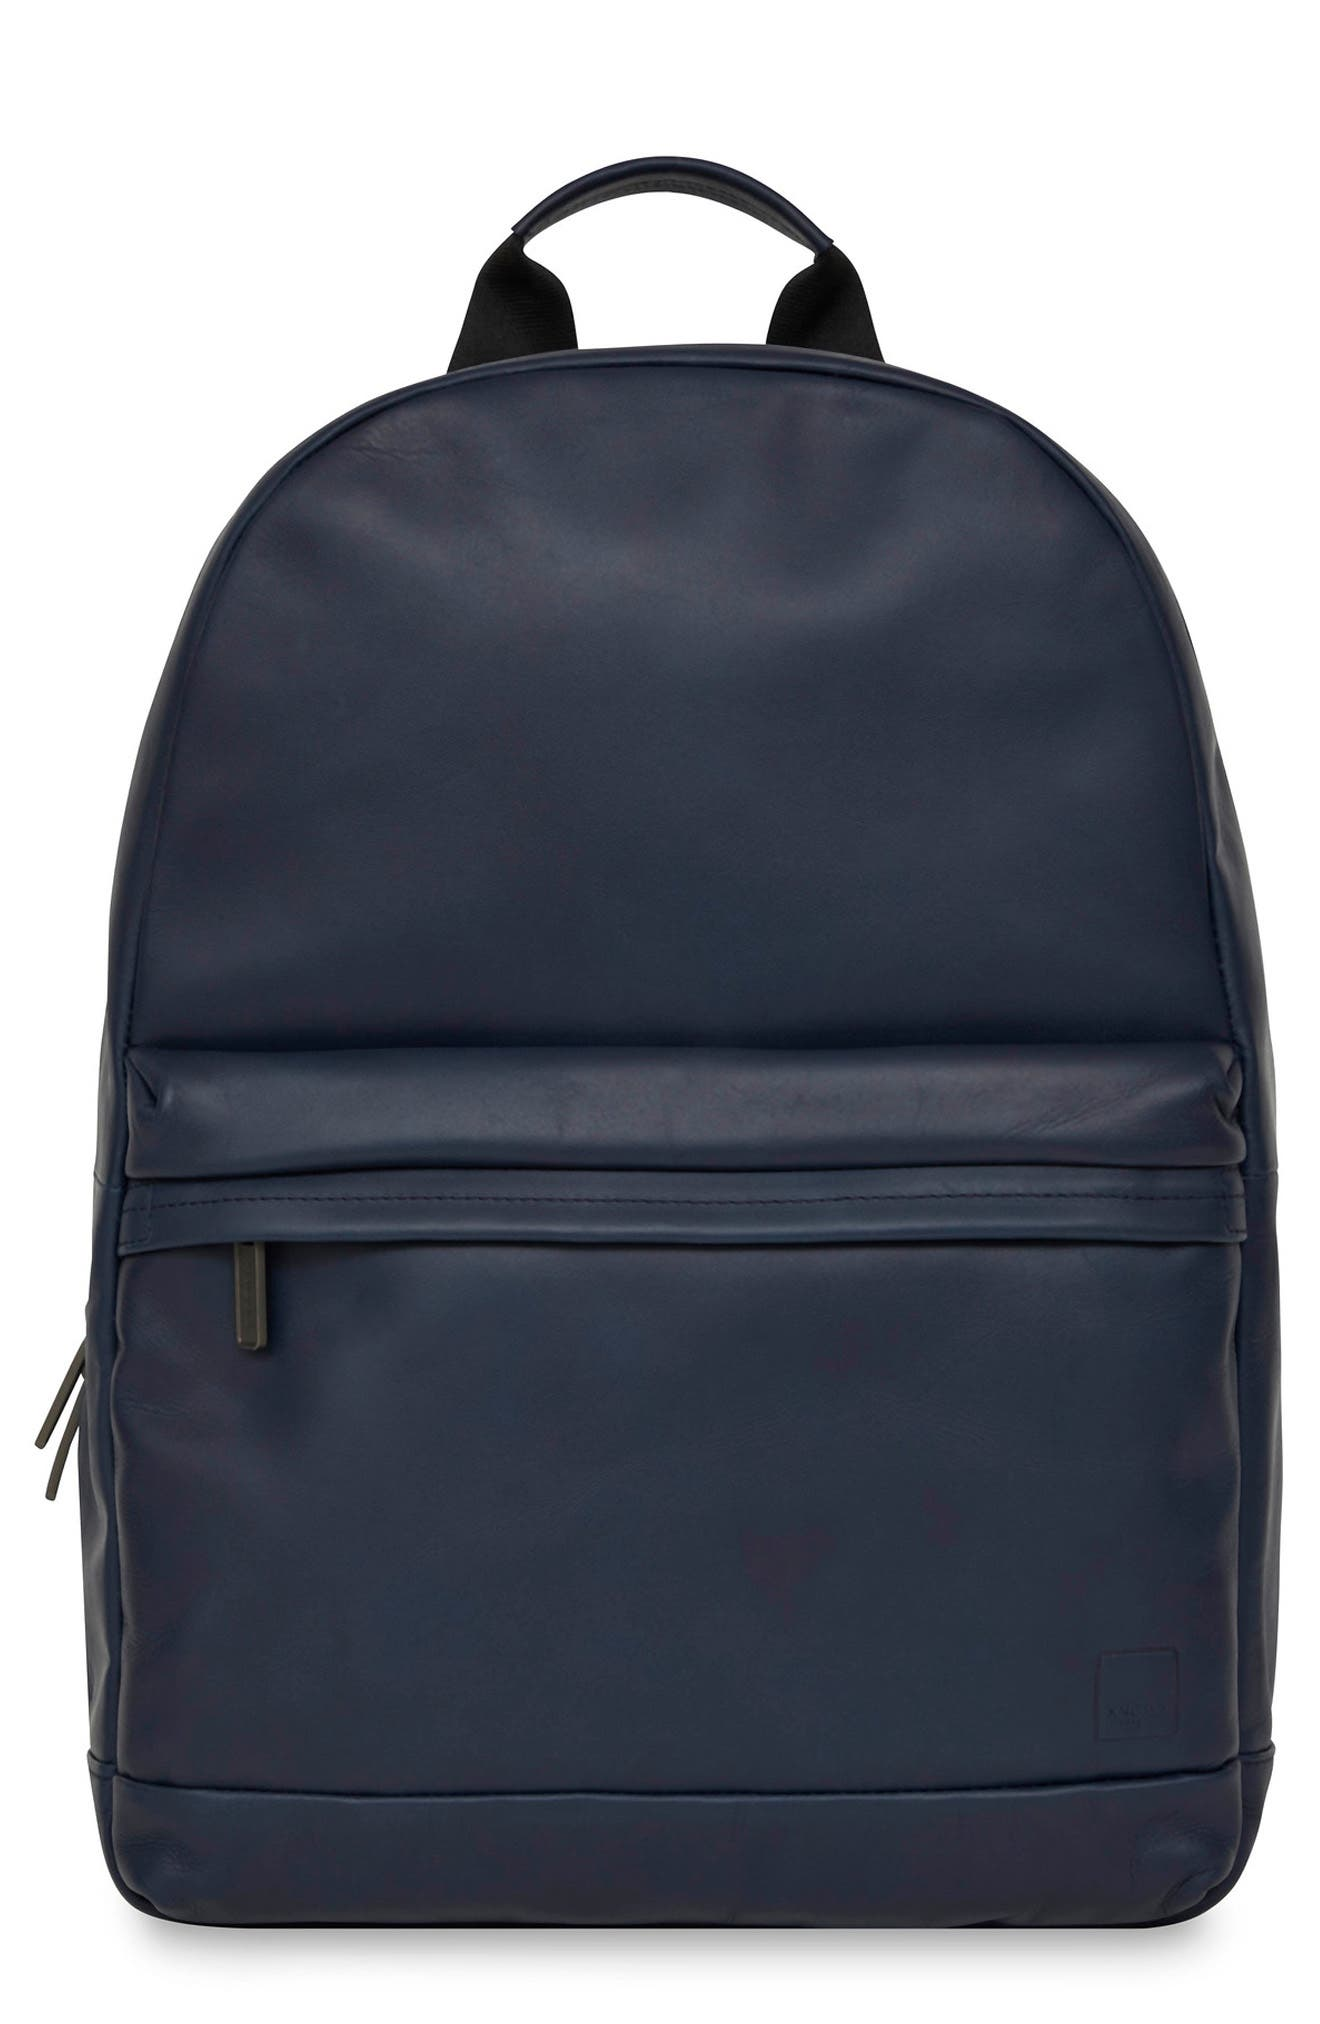 Barbican Albion Leather Backpack,                             Main thumbnail 1, color,                             400